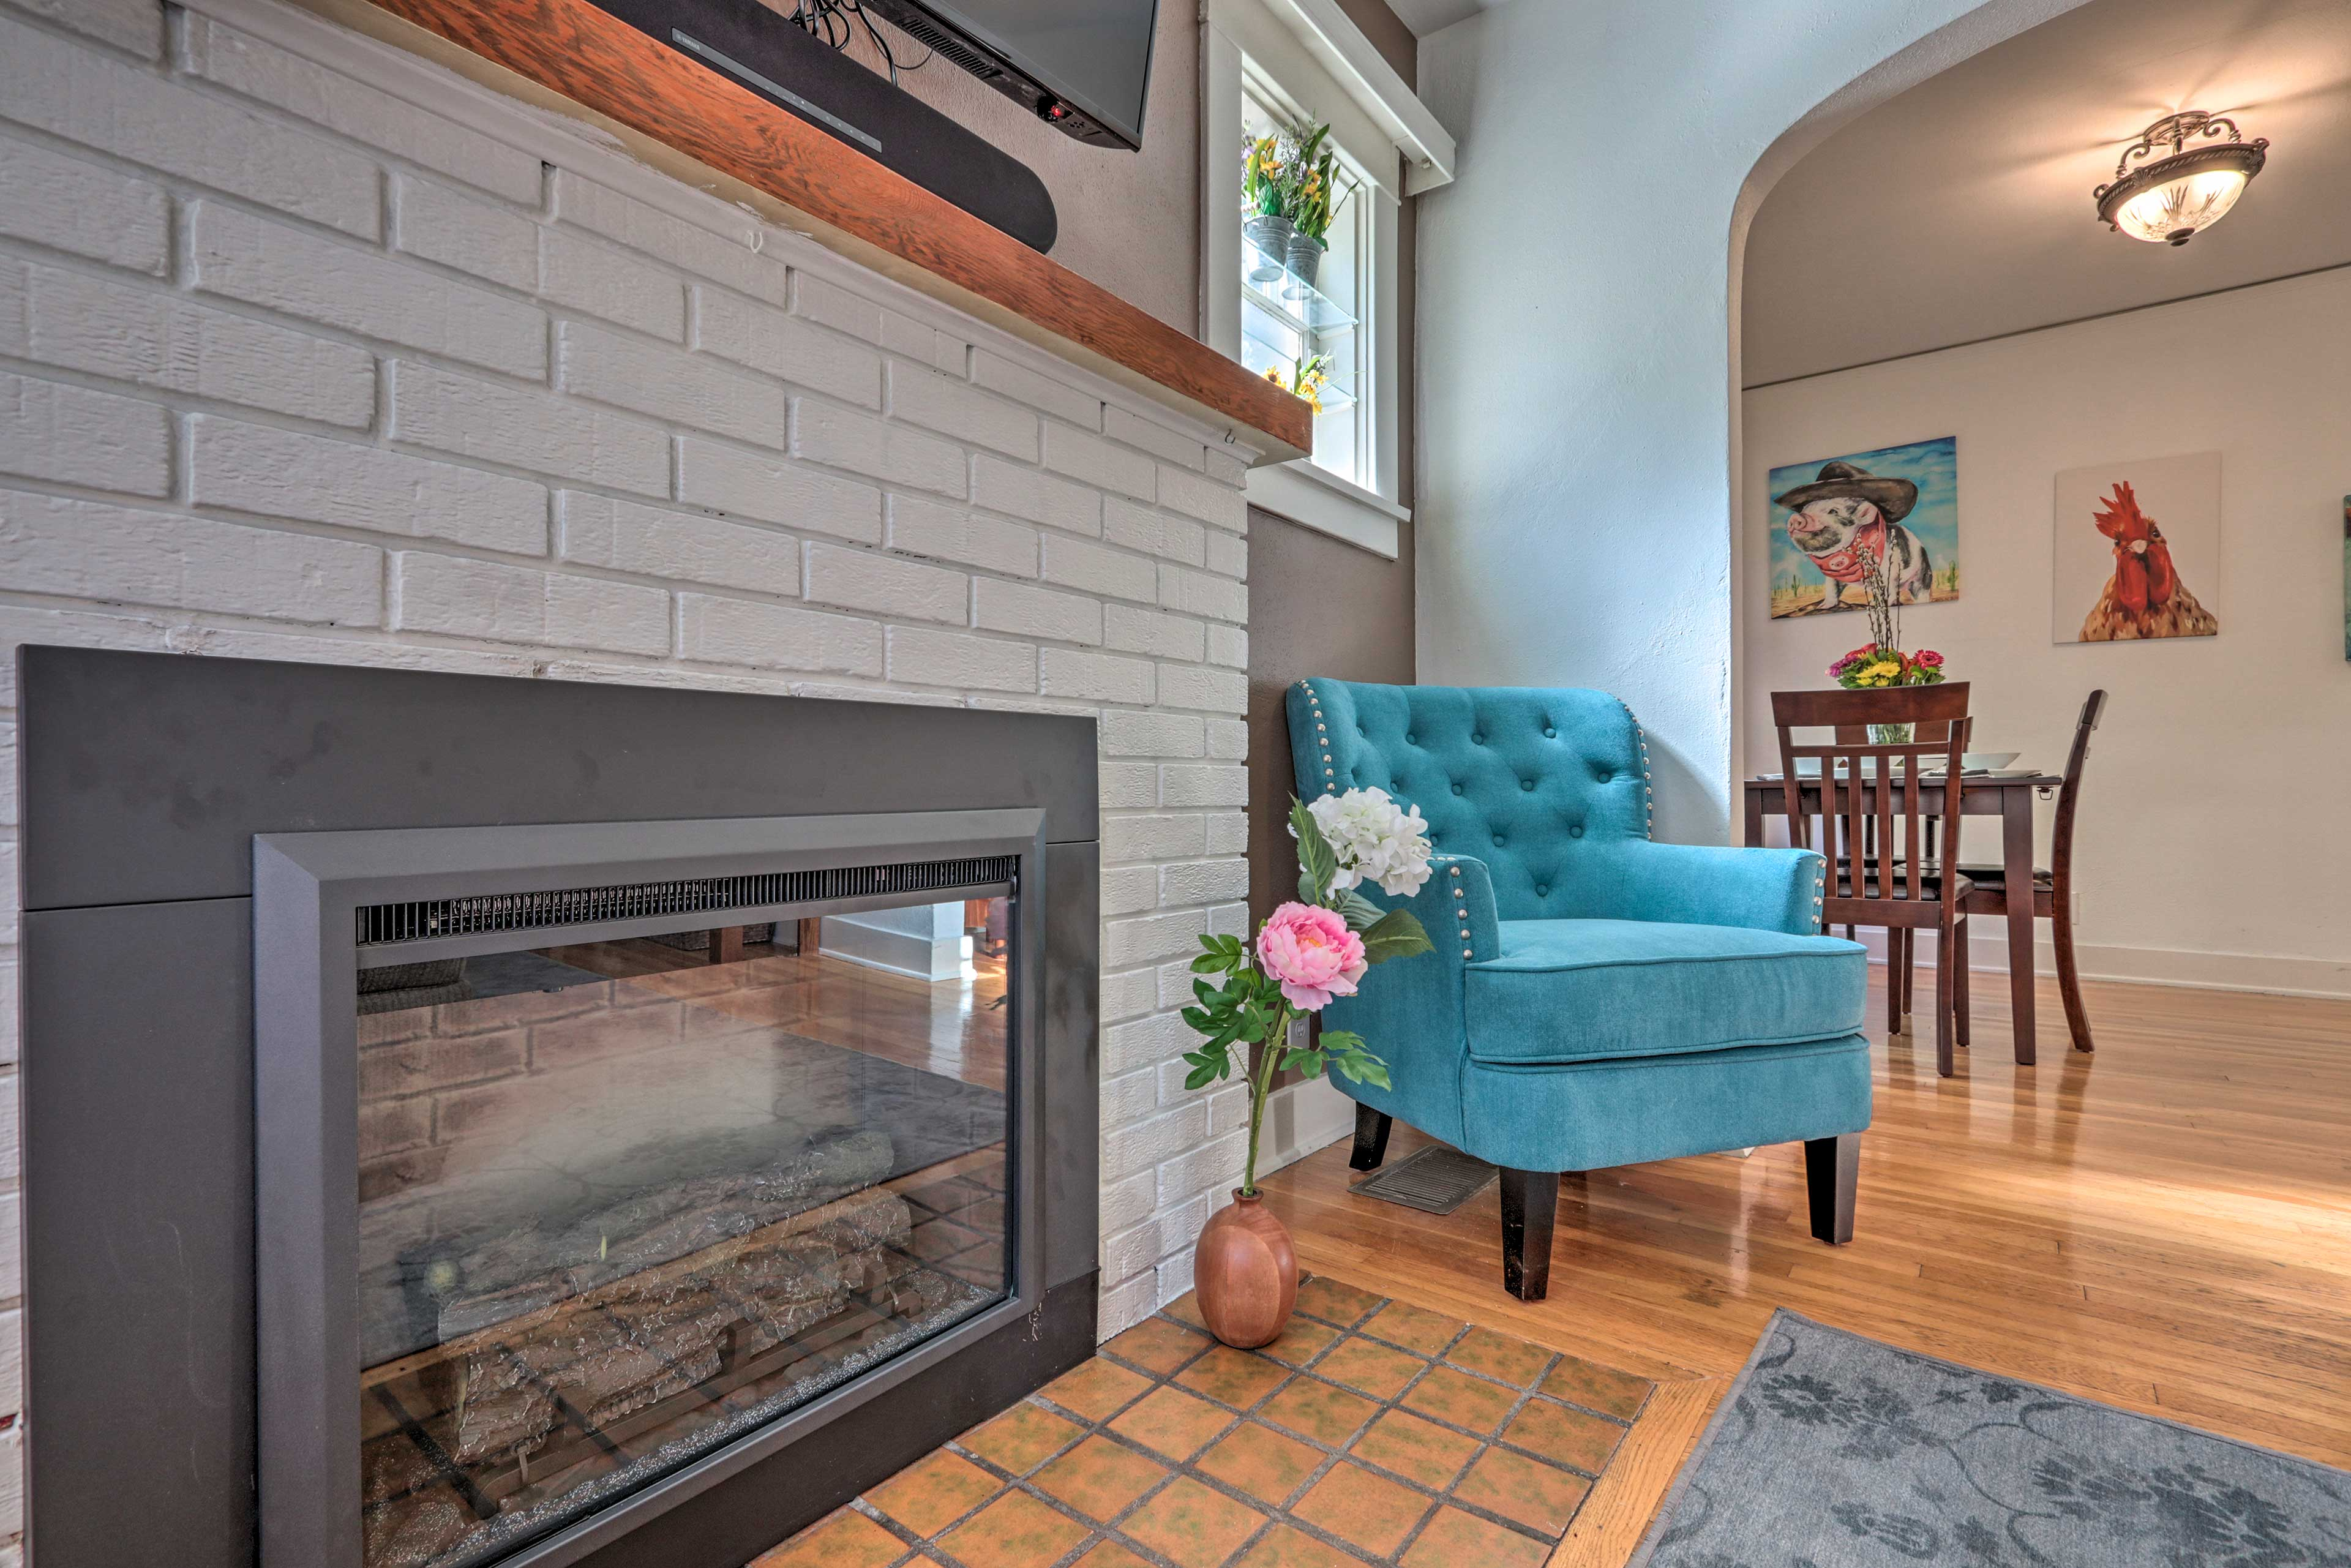 Warm up on chilly winter days with the gas fireplace.